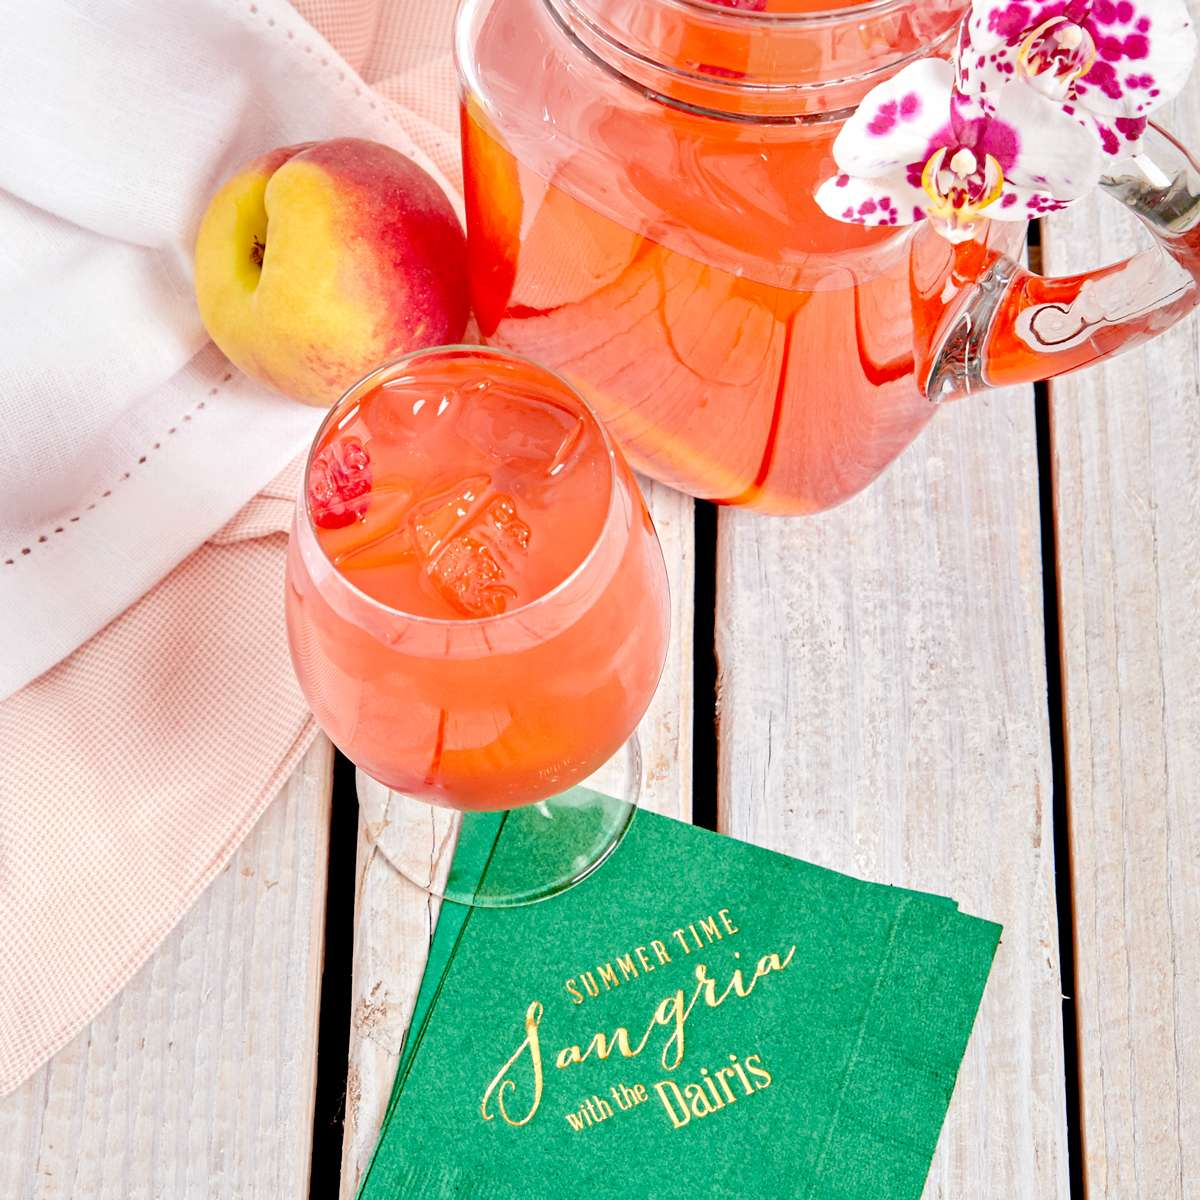 Rosè Peach Sangria cocktail recipe for summer parties